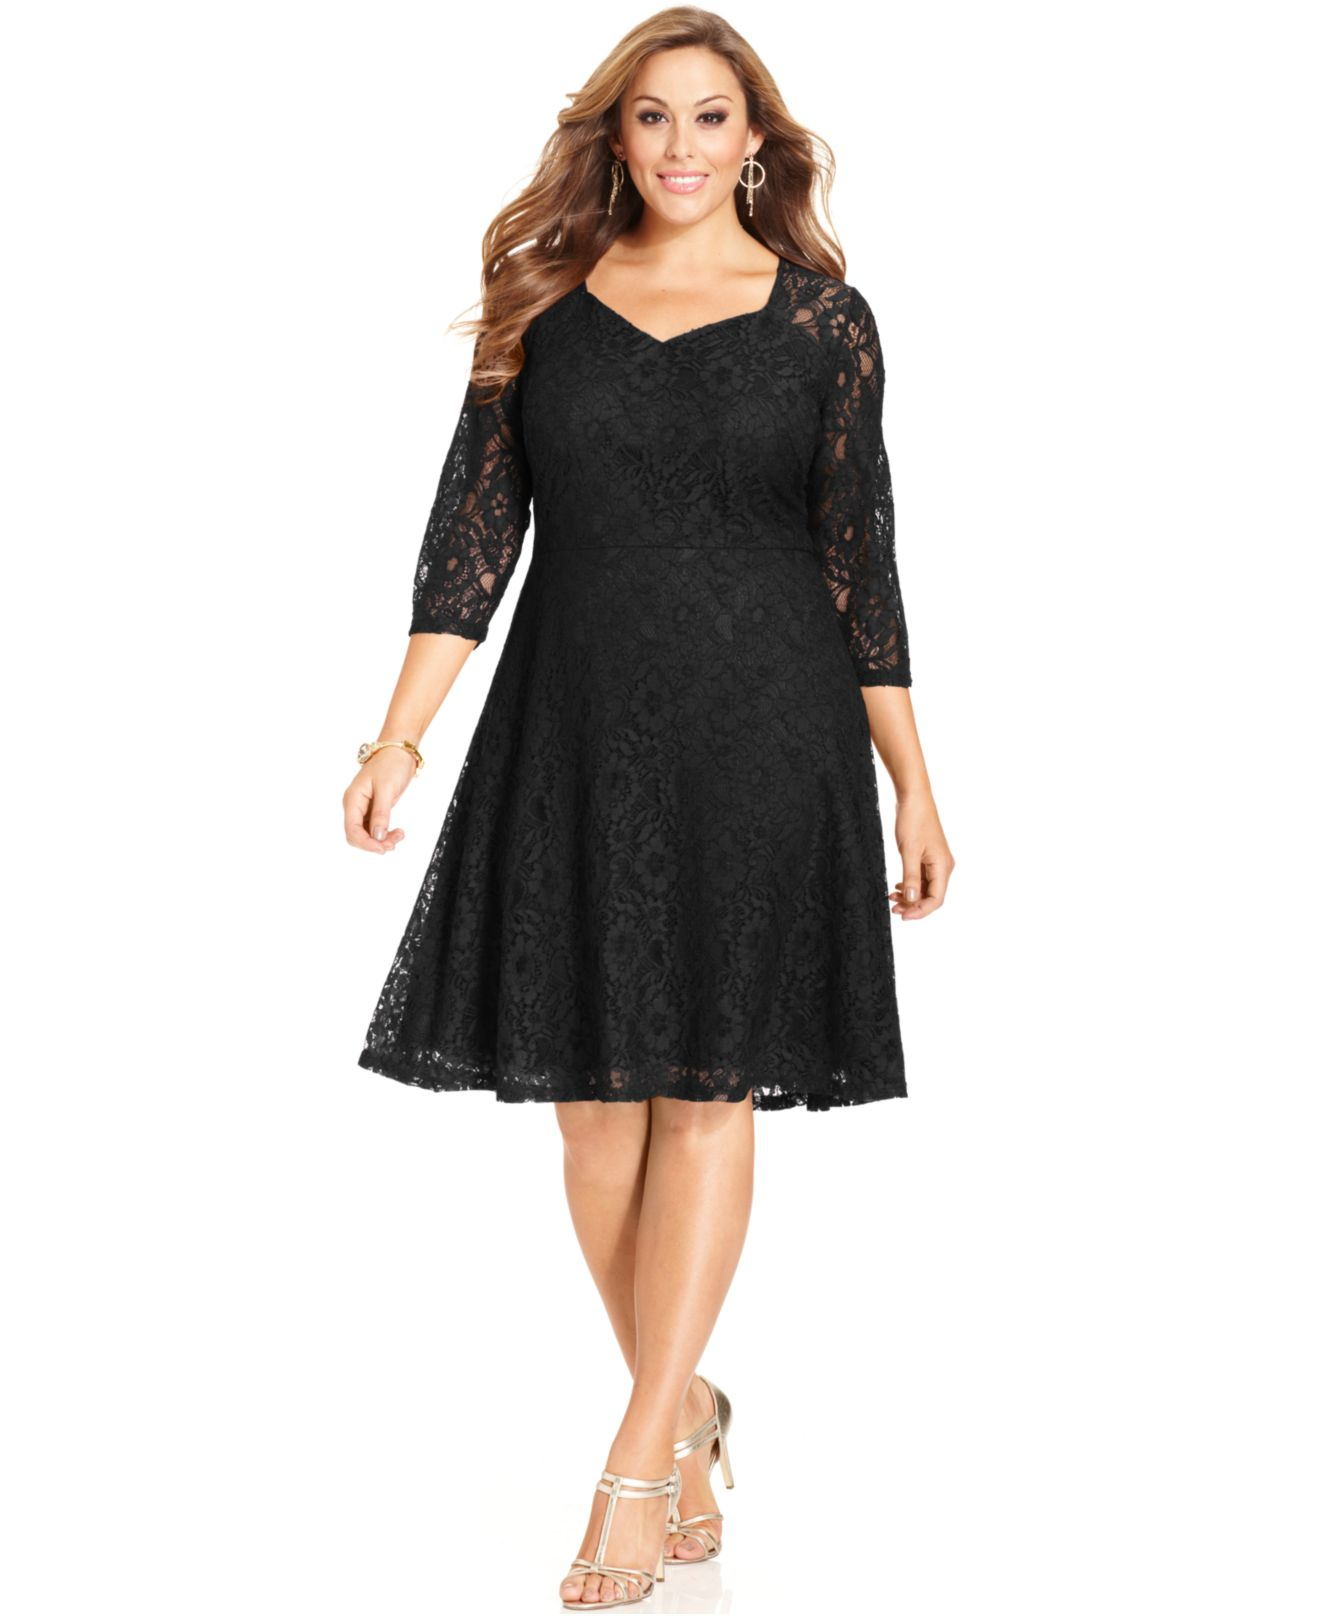 Spense Plus Size Three-quarter-sleeve Lace A-line Dress in Black - Lyst